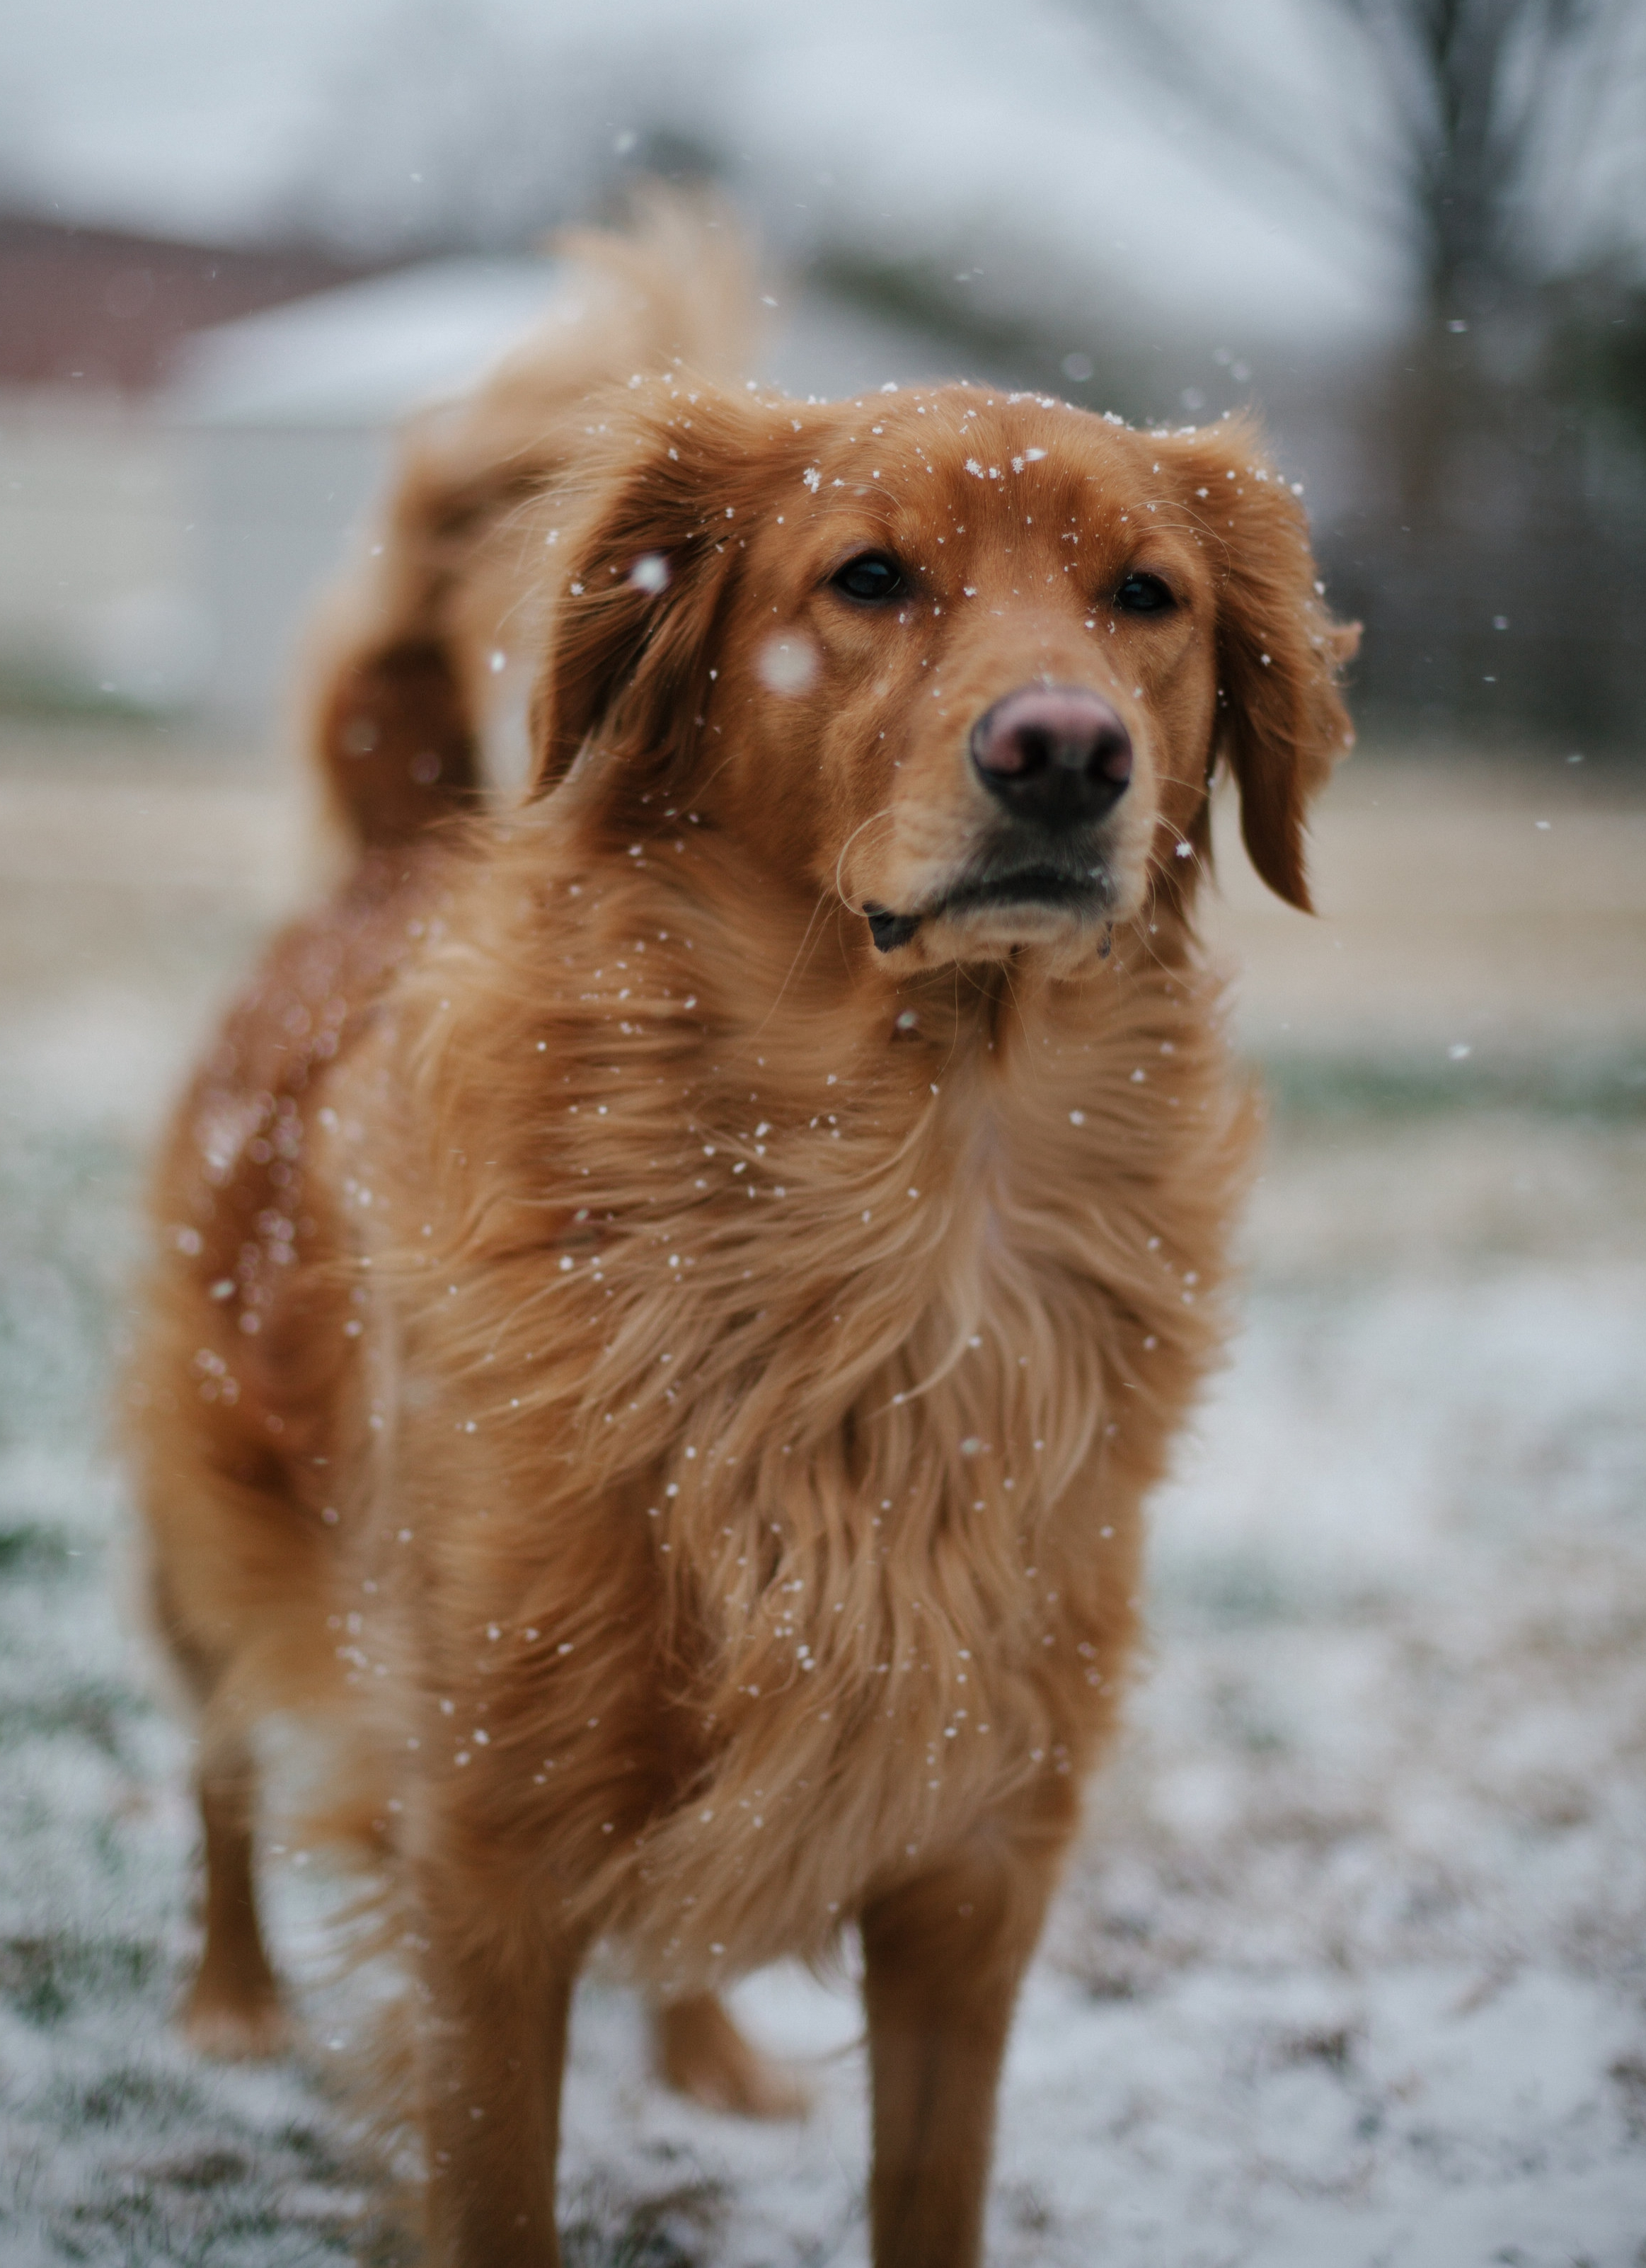 - Our sweet pup, PJ, in the snow in our backyard.